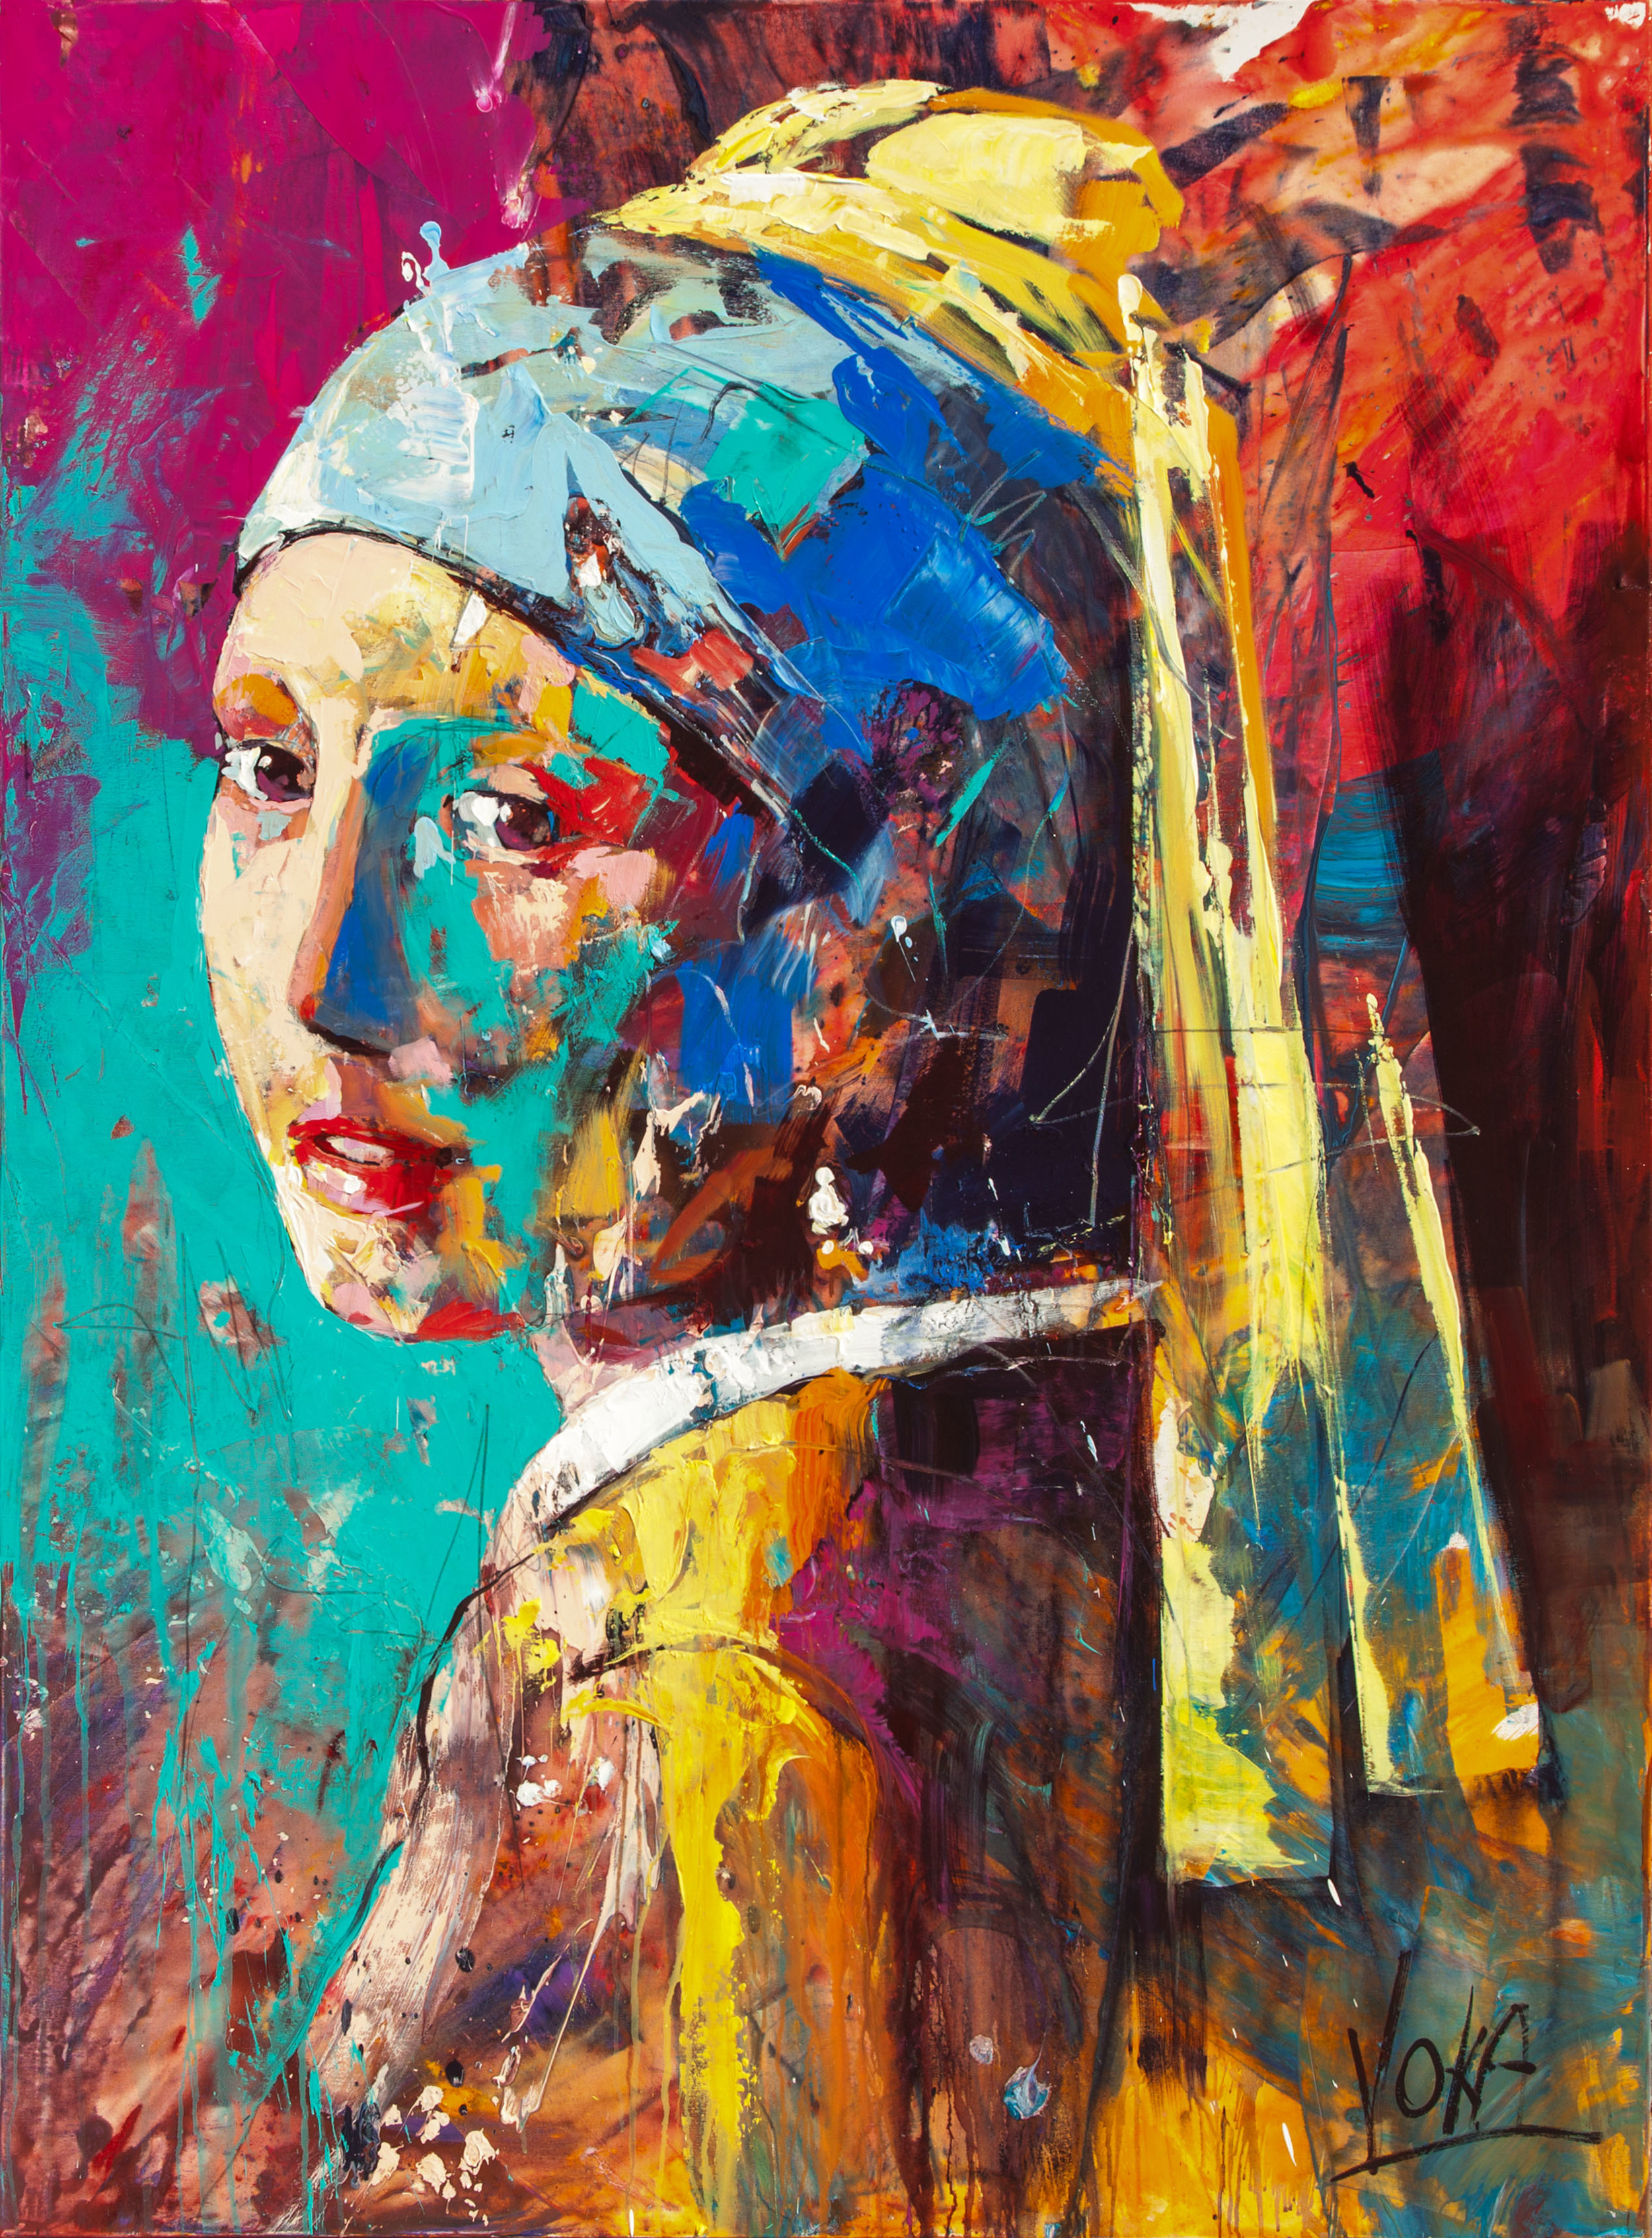 Girl with the Pearl Earring, 200X150cm / 78,7X59,1 inch, Acrylic on Canvas